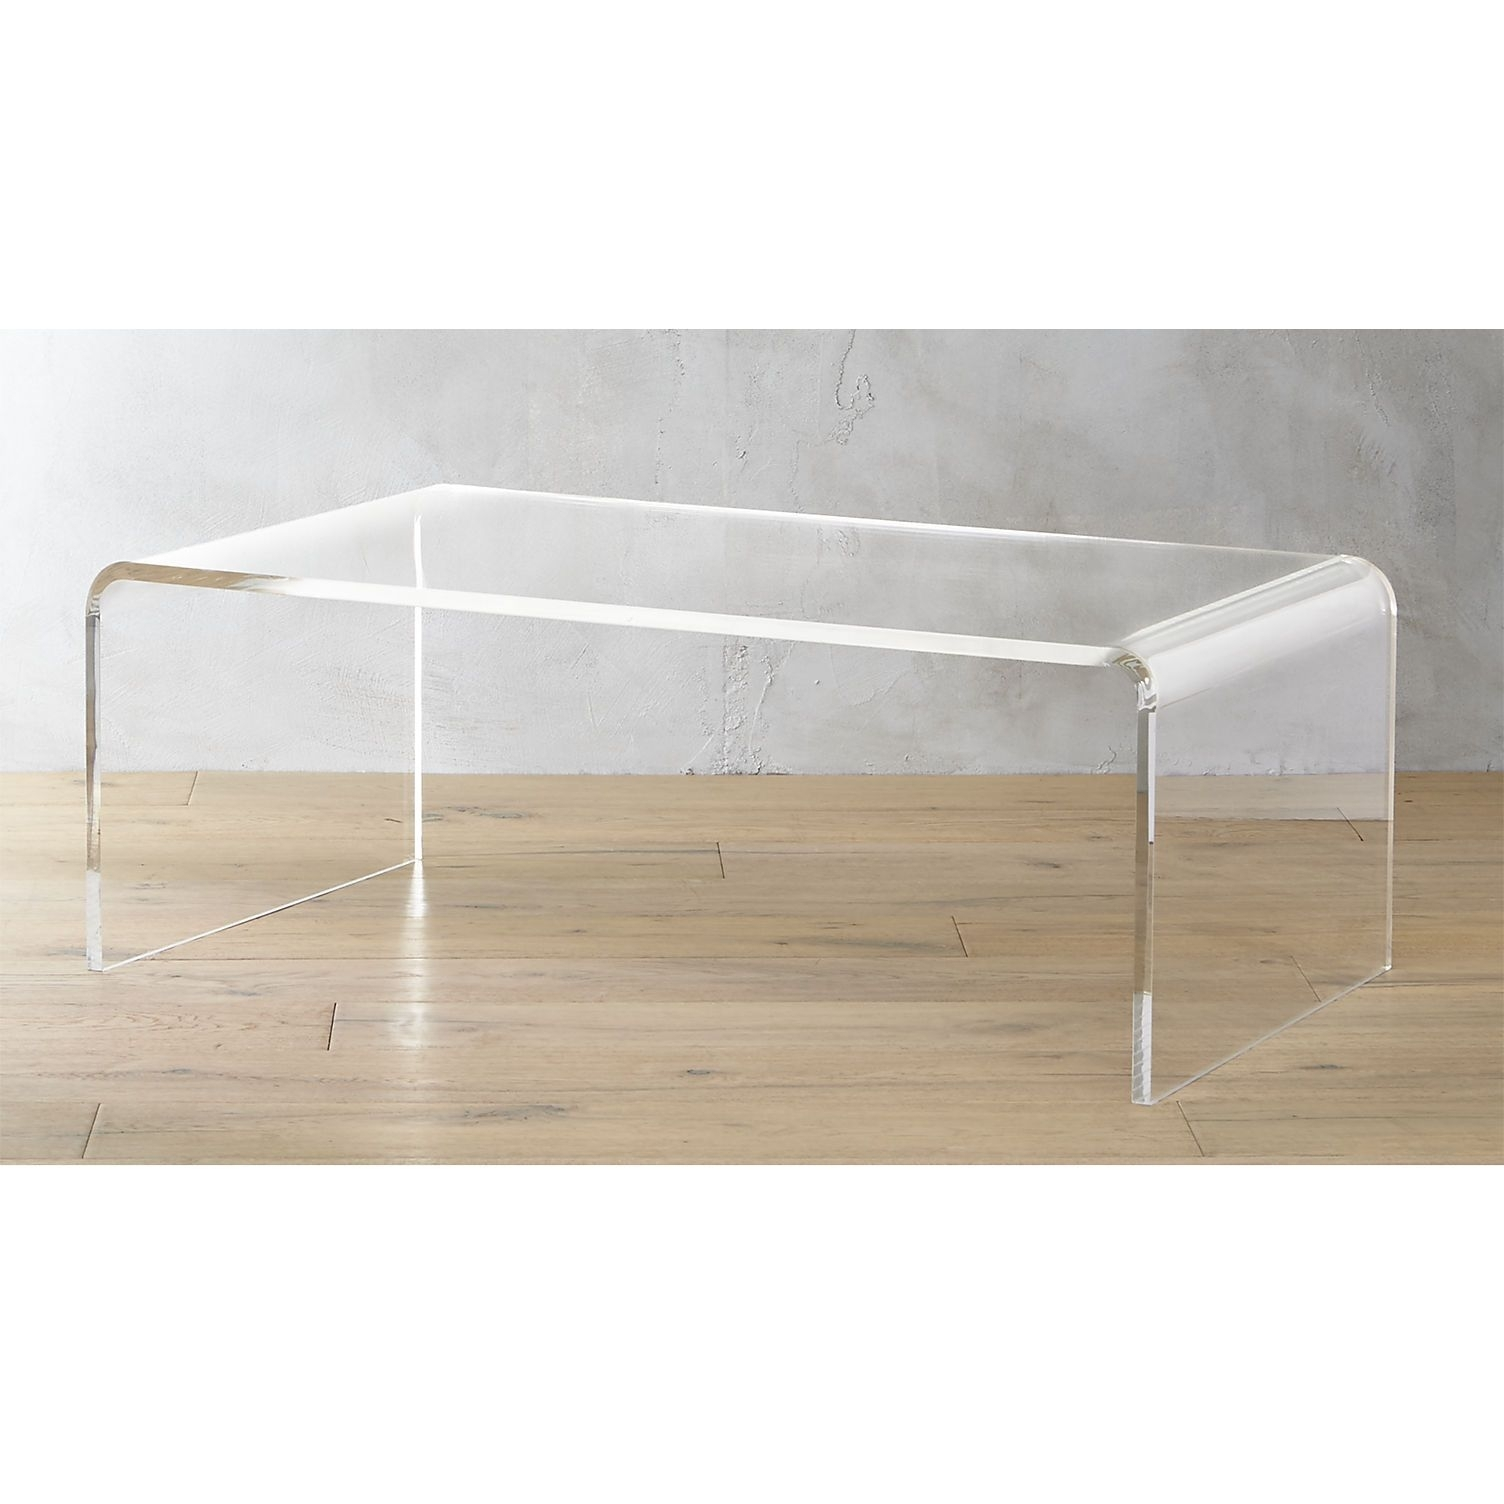 Peekaboo Acrylic Tall Coffee Table | Acrylics, Glass Table And Coffee Pertaining To Peekaboo Acrylic Tall Coffee Tables (Photo 2 of 30)